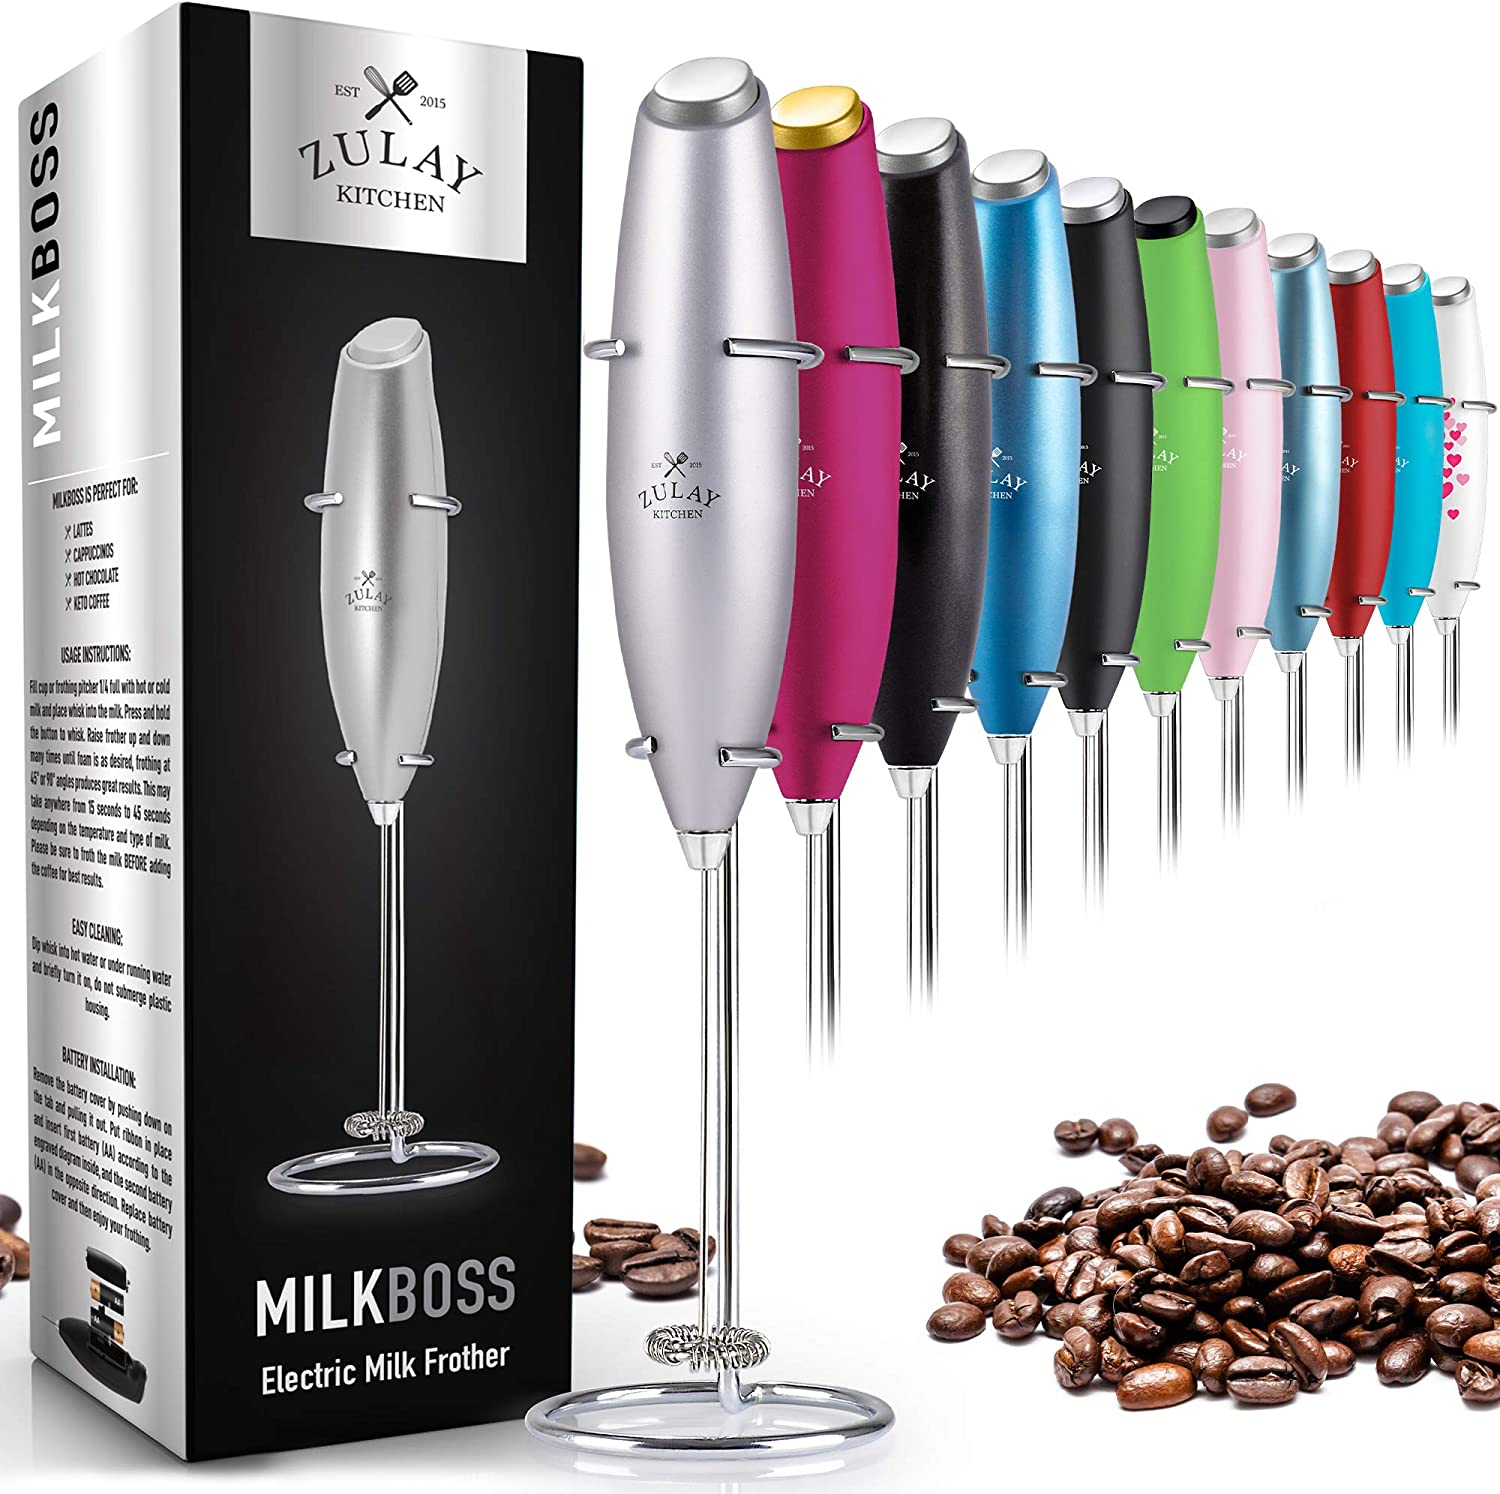 Zulay Original Milk Frother Handheld Foam Maker for Lattes - Whisk Drink Mixer for Bulletproof Coffee, Mini Foamer for Cappuccino, Frappe, Matcha, Hot Chocolate by Milk Boss (Silver)